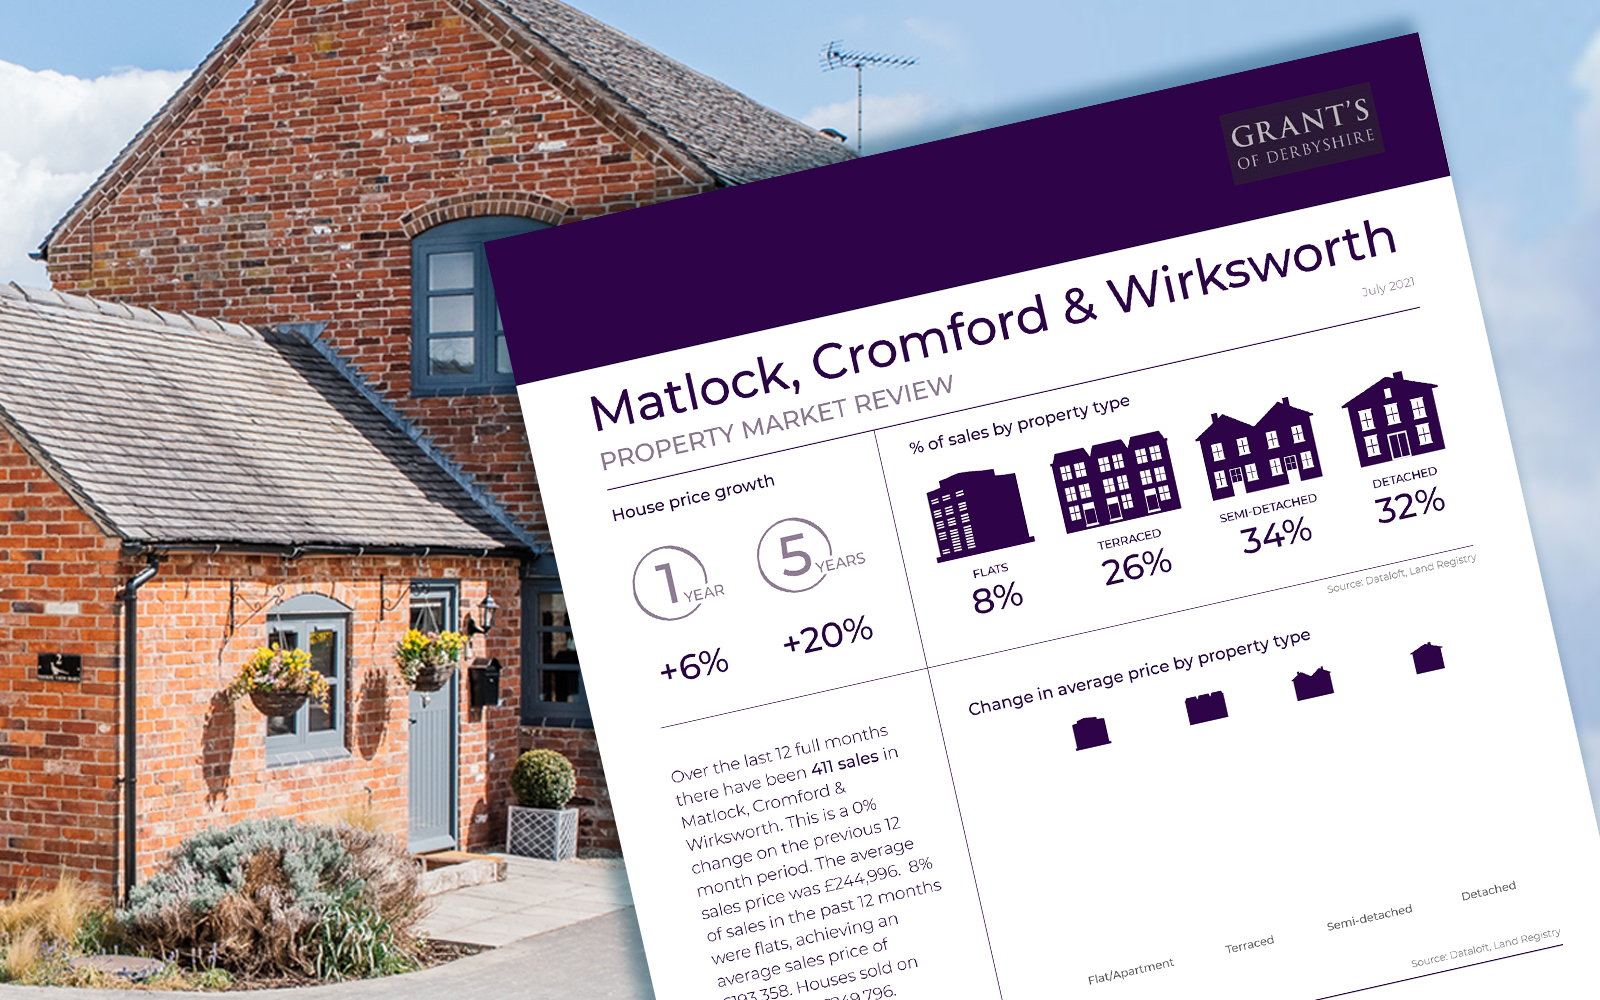 Matlock, Cromford and Wirksworth Property Market Review July 2021